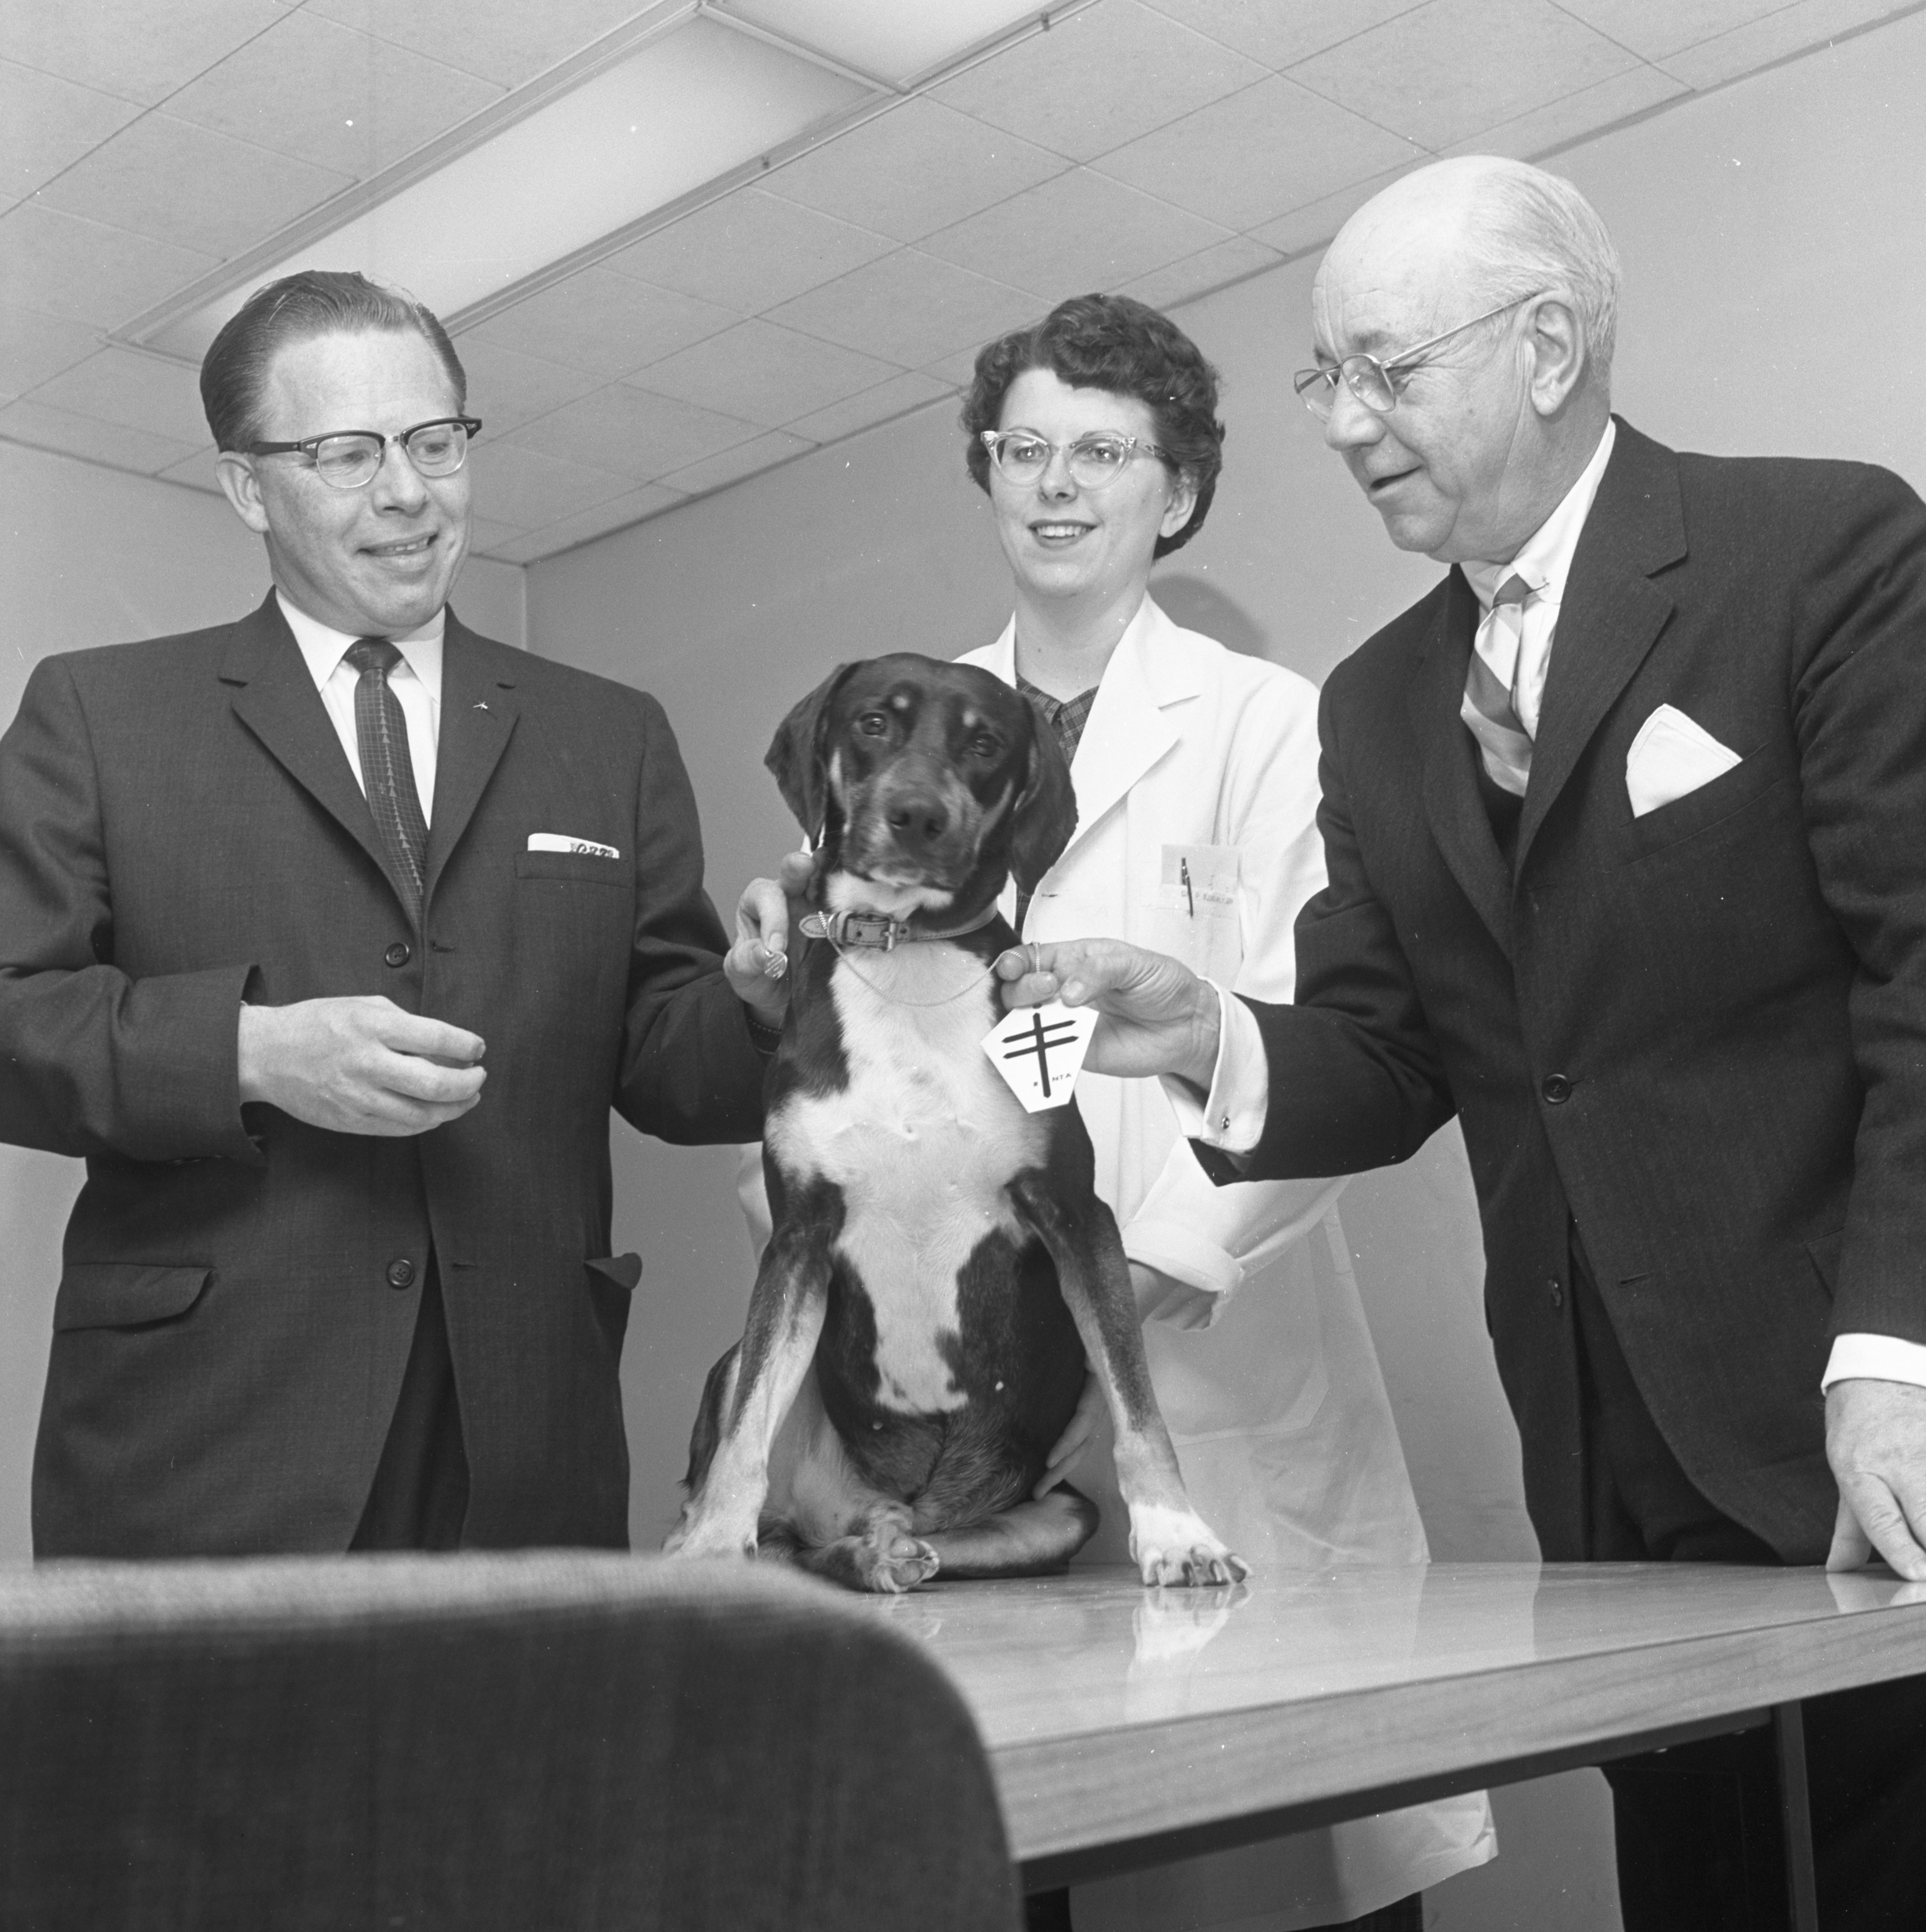 Image from Homer, Hound Dog & Lung Transplant Recipient, Receives Two Medals For His Contribution To Science, April 1962